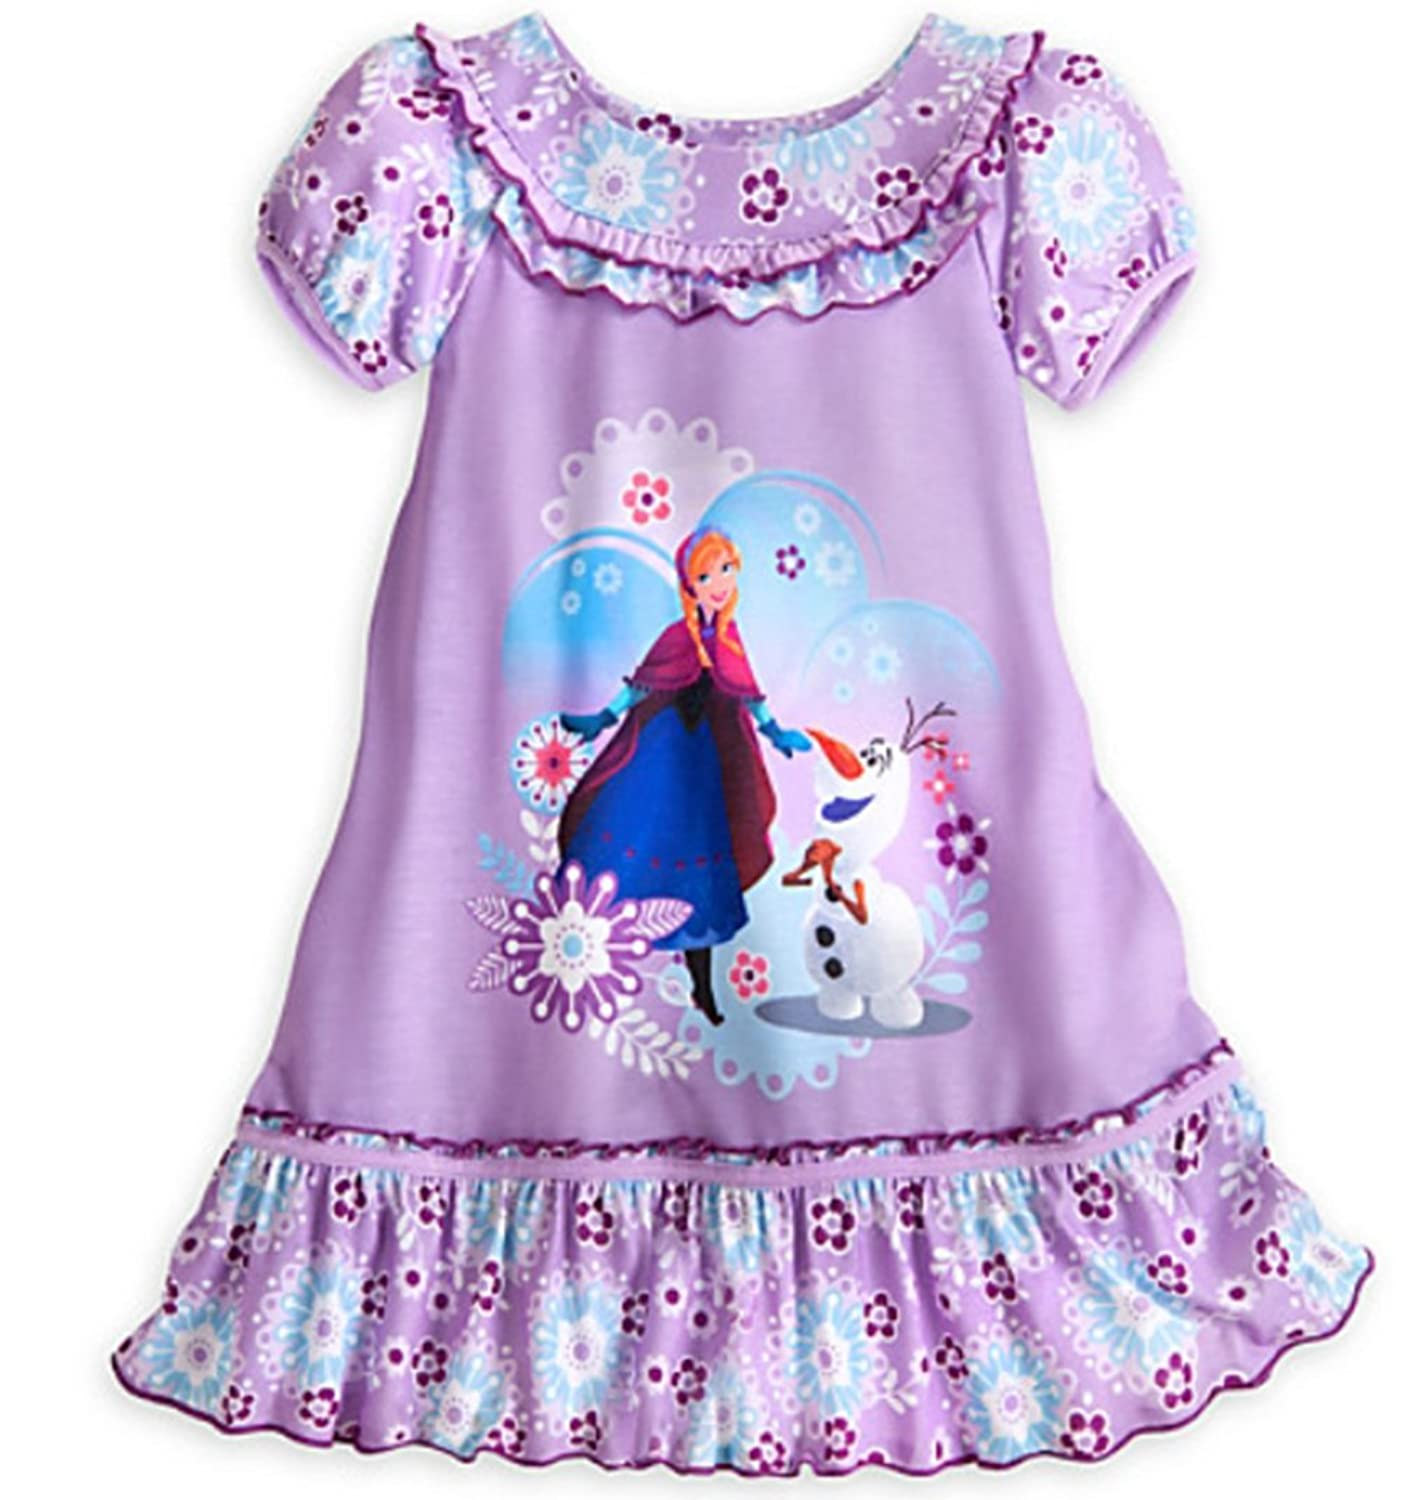 Girl\'s Novelty Nightgowns | Amazon.com